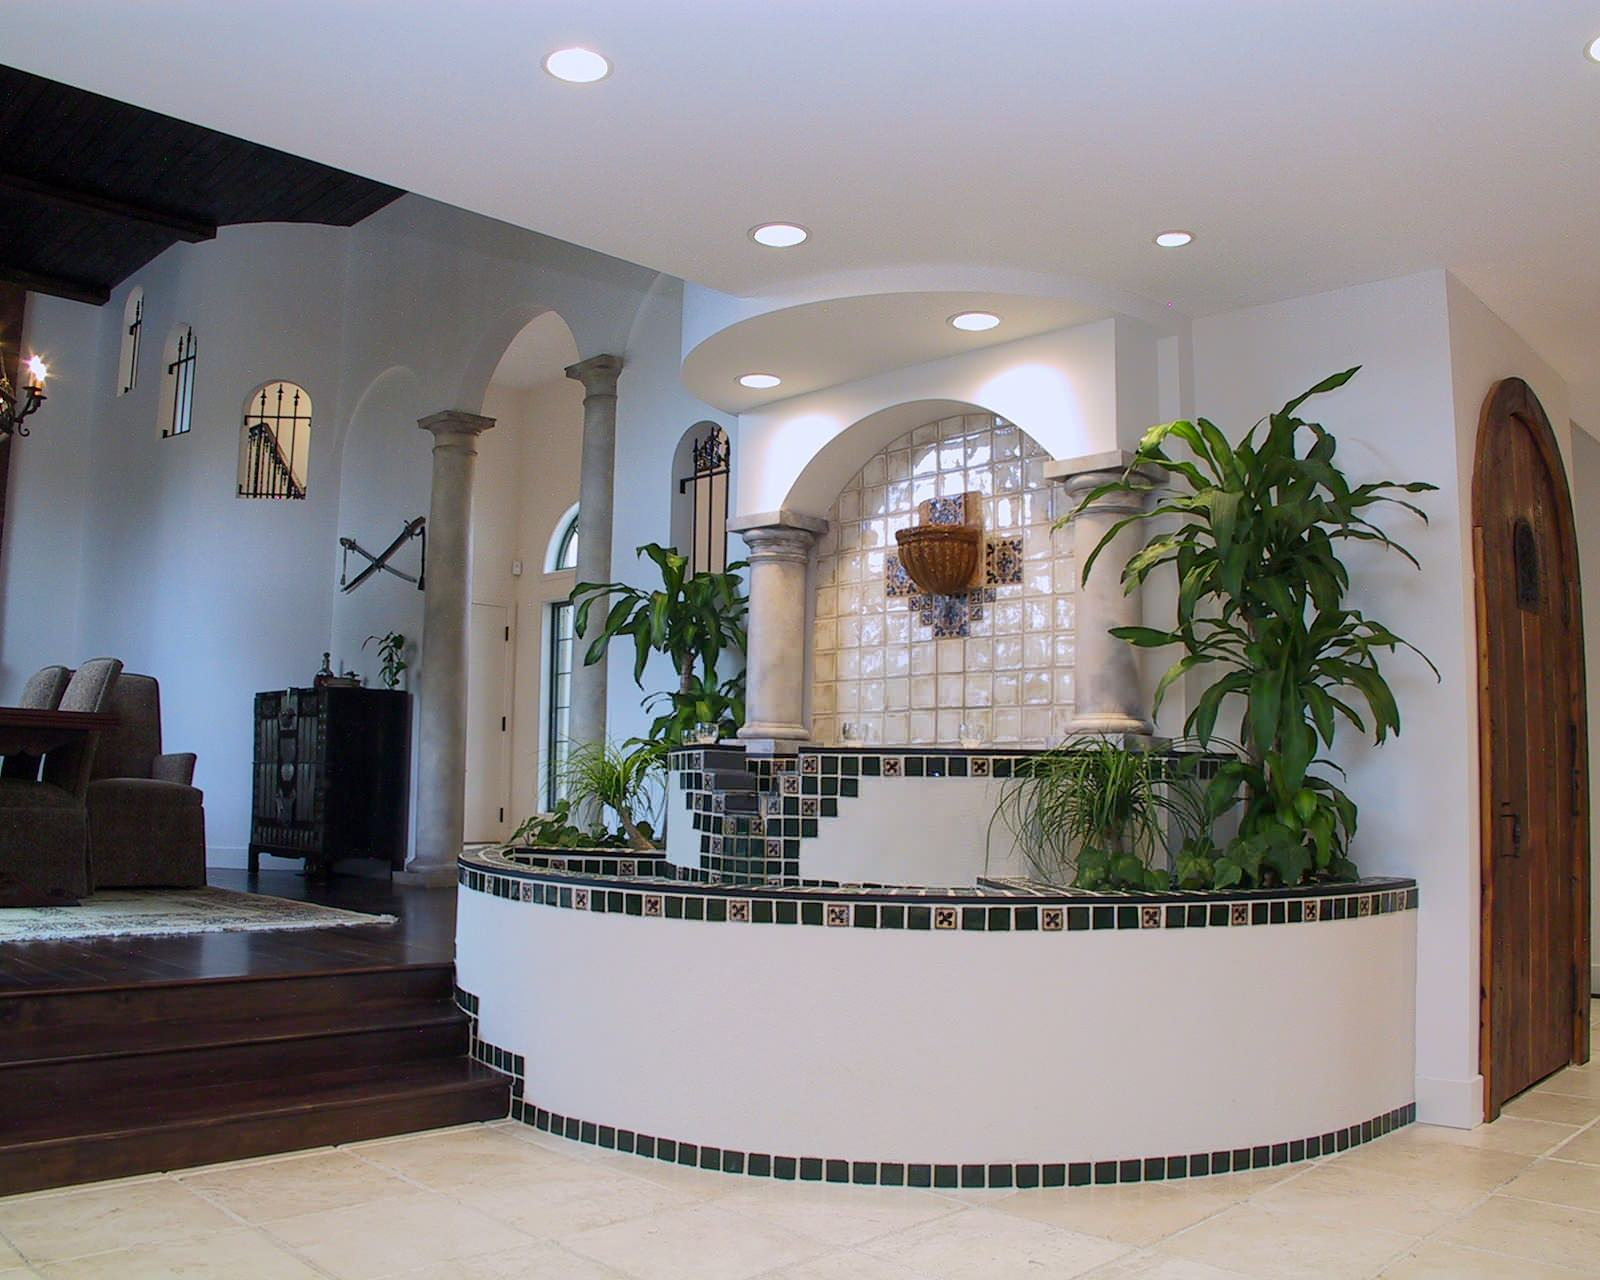 Interesting Ceiling Lighting And Columns Plus Foyer Also Indoor Fountains With House Plants Plus Recessed Lighting Also Stair Step To Deck For Dining Room Plus Foyer Chandelier